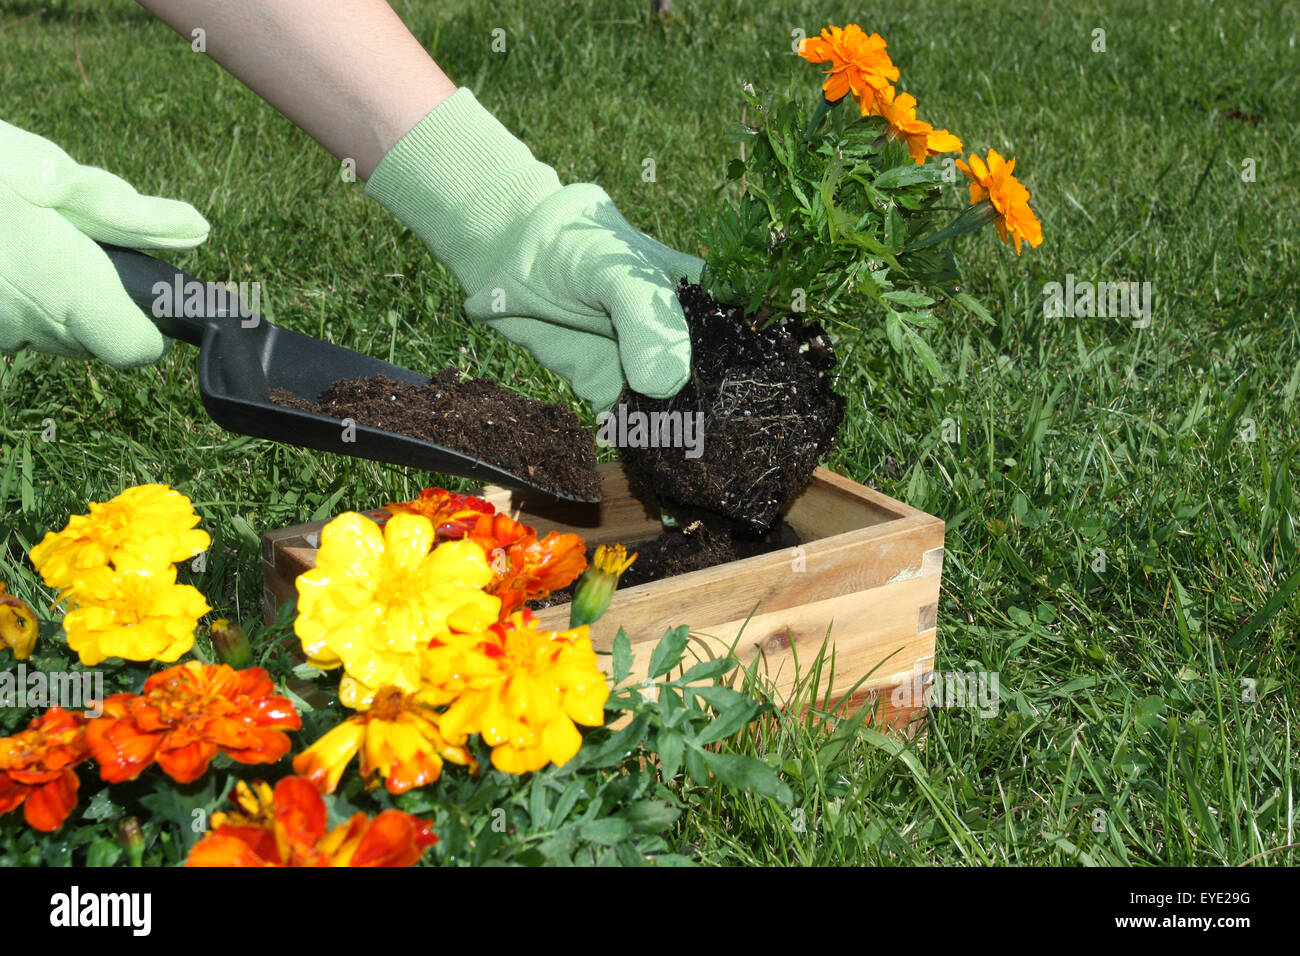 Potting flowers outdoors during spring stock photo 85746348 alamy potting flowers outdoors during spring mightylinksfo